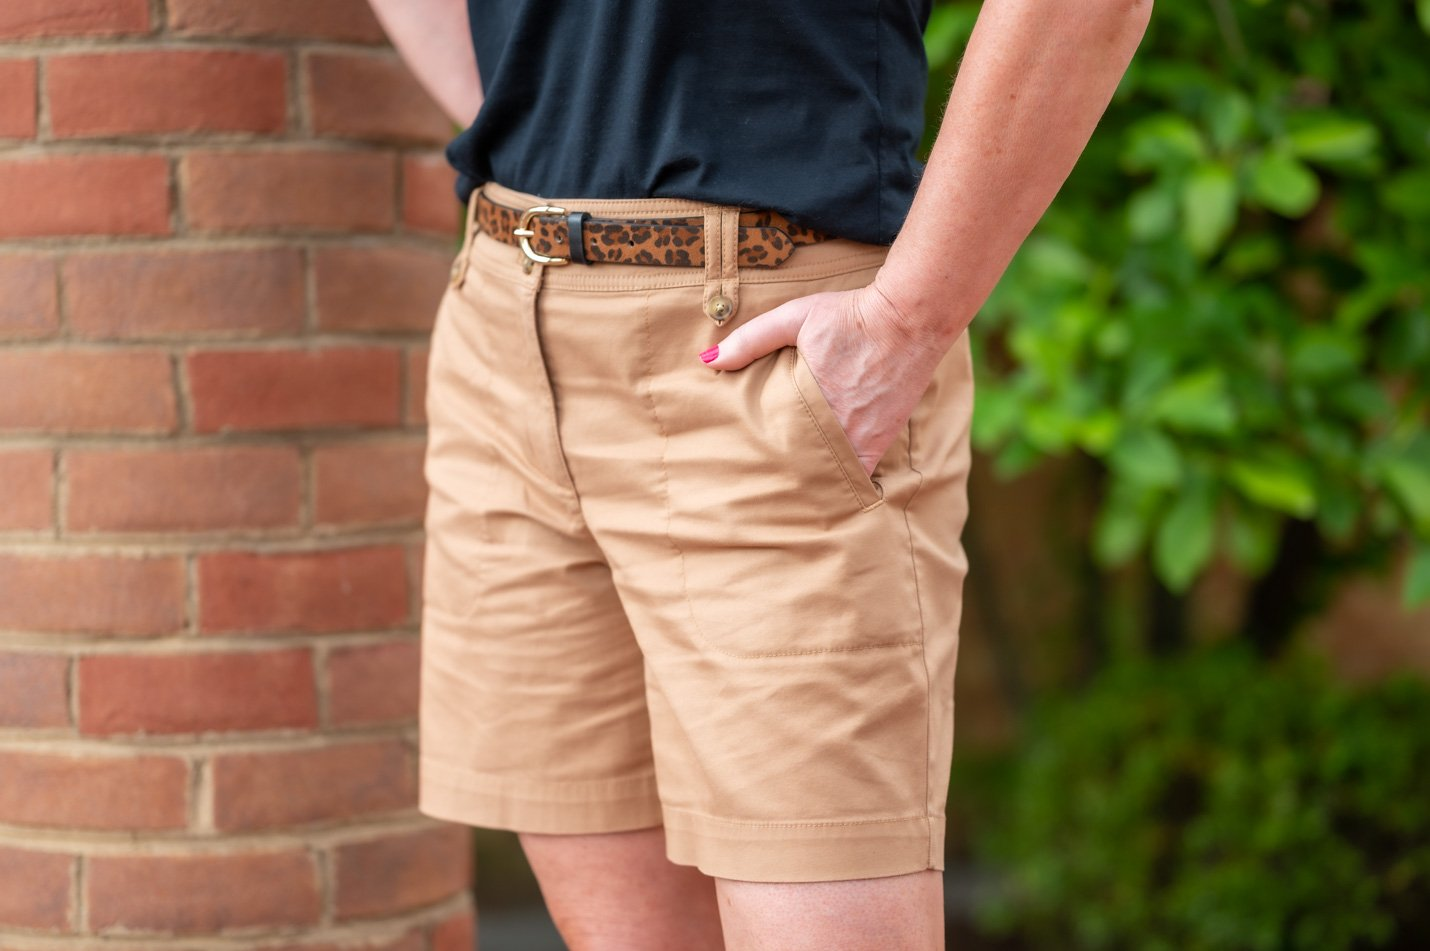 How to Select Shorts